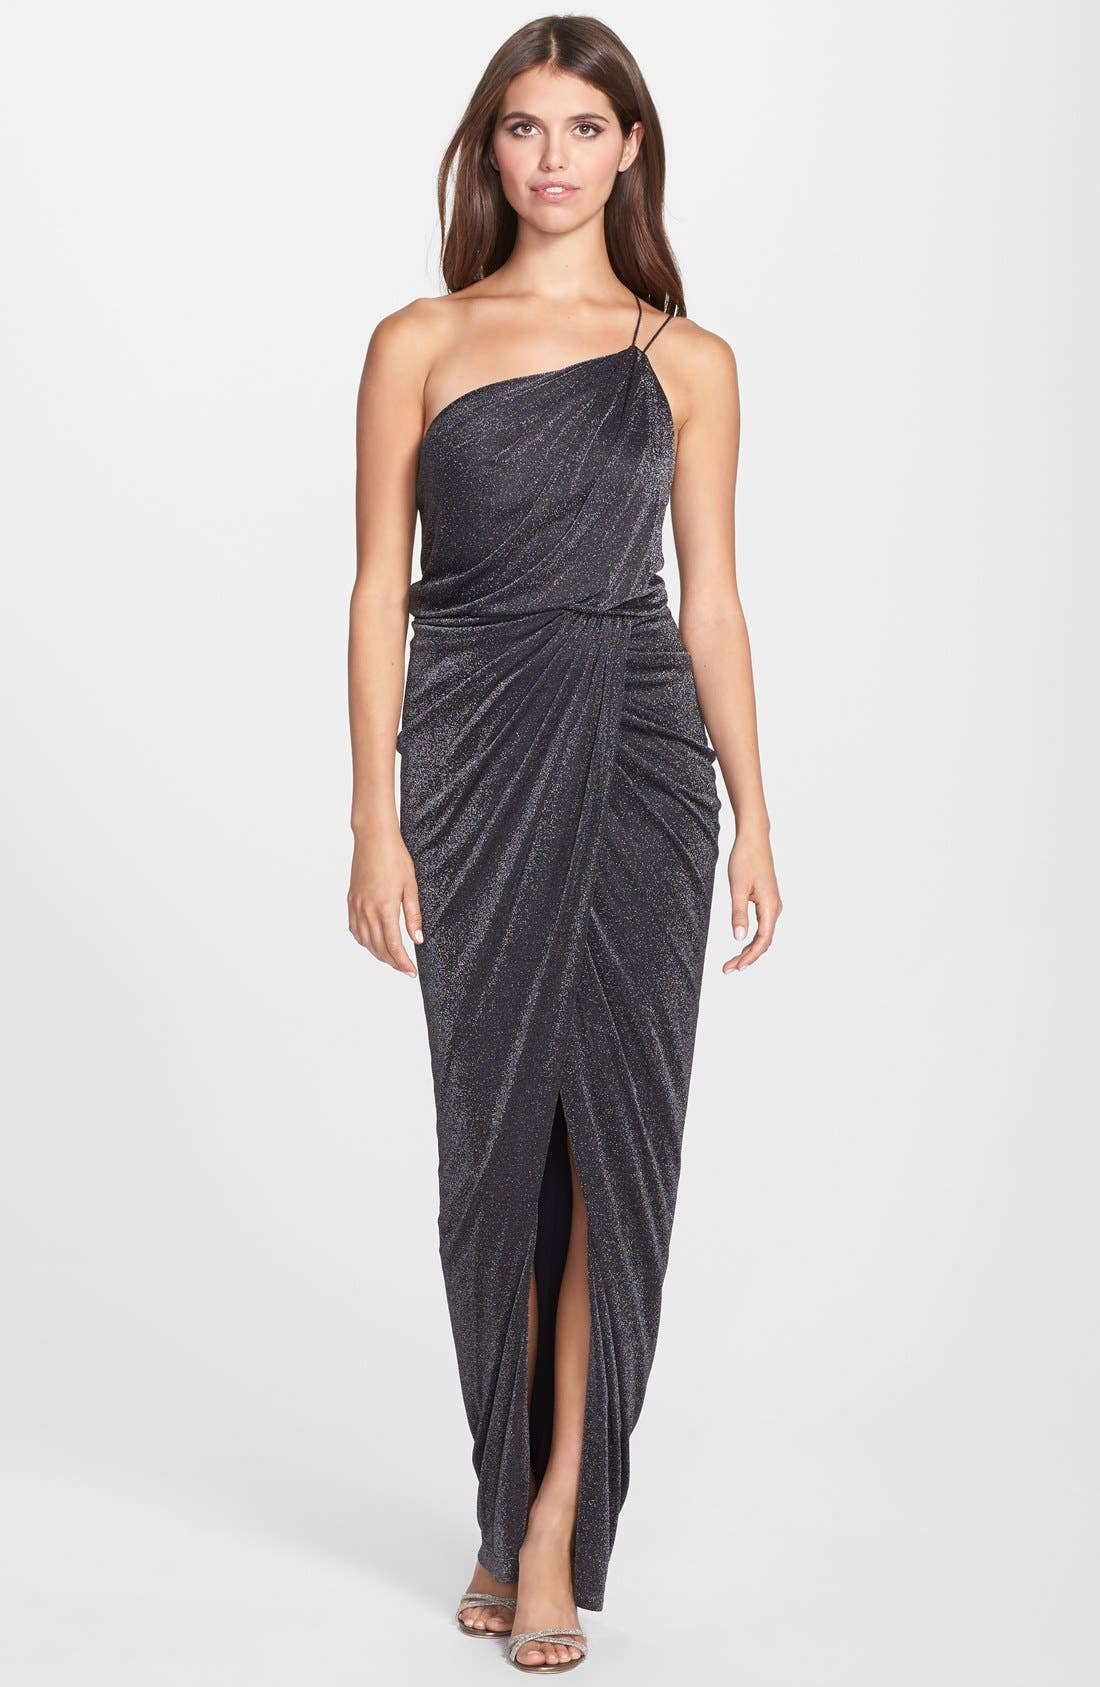 Main Image - Aidan by Aidan Mattox One Shoulder Metallic Knit Gown